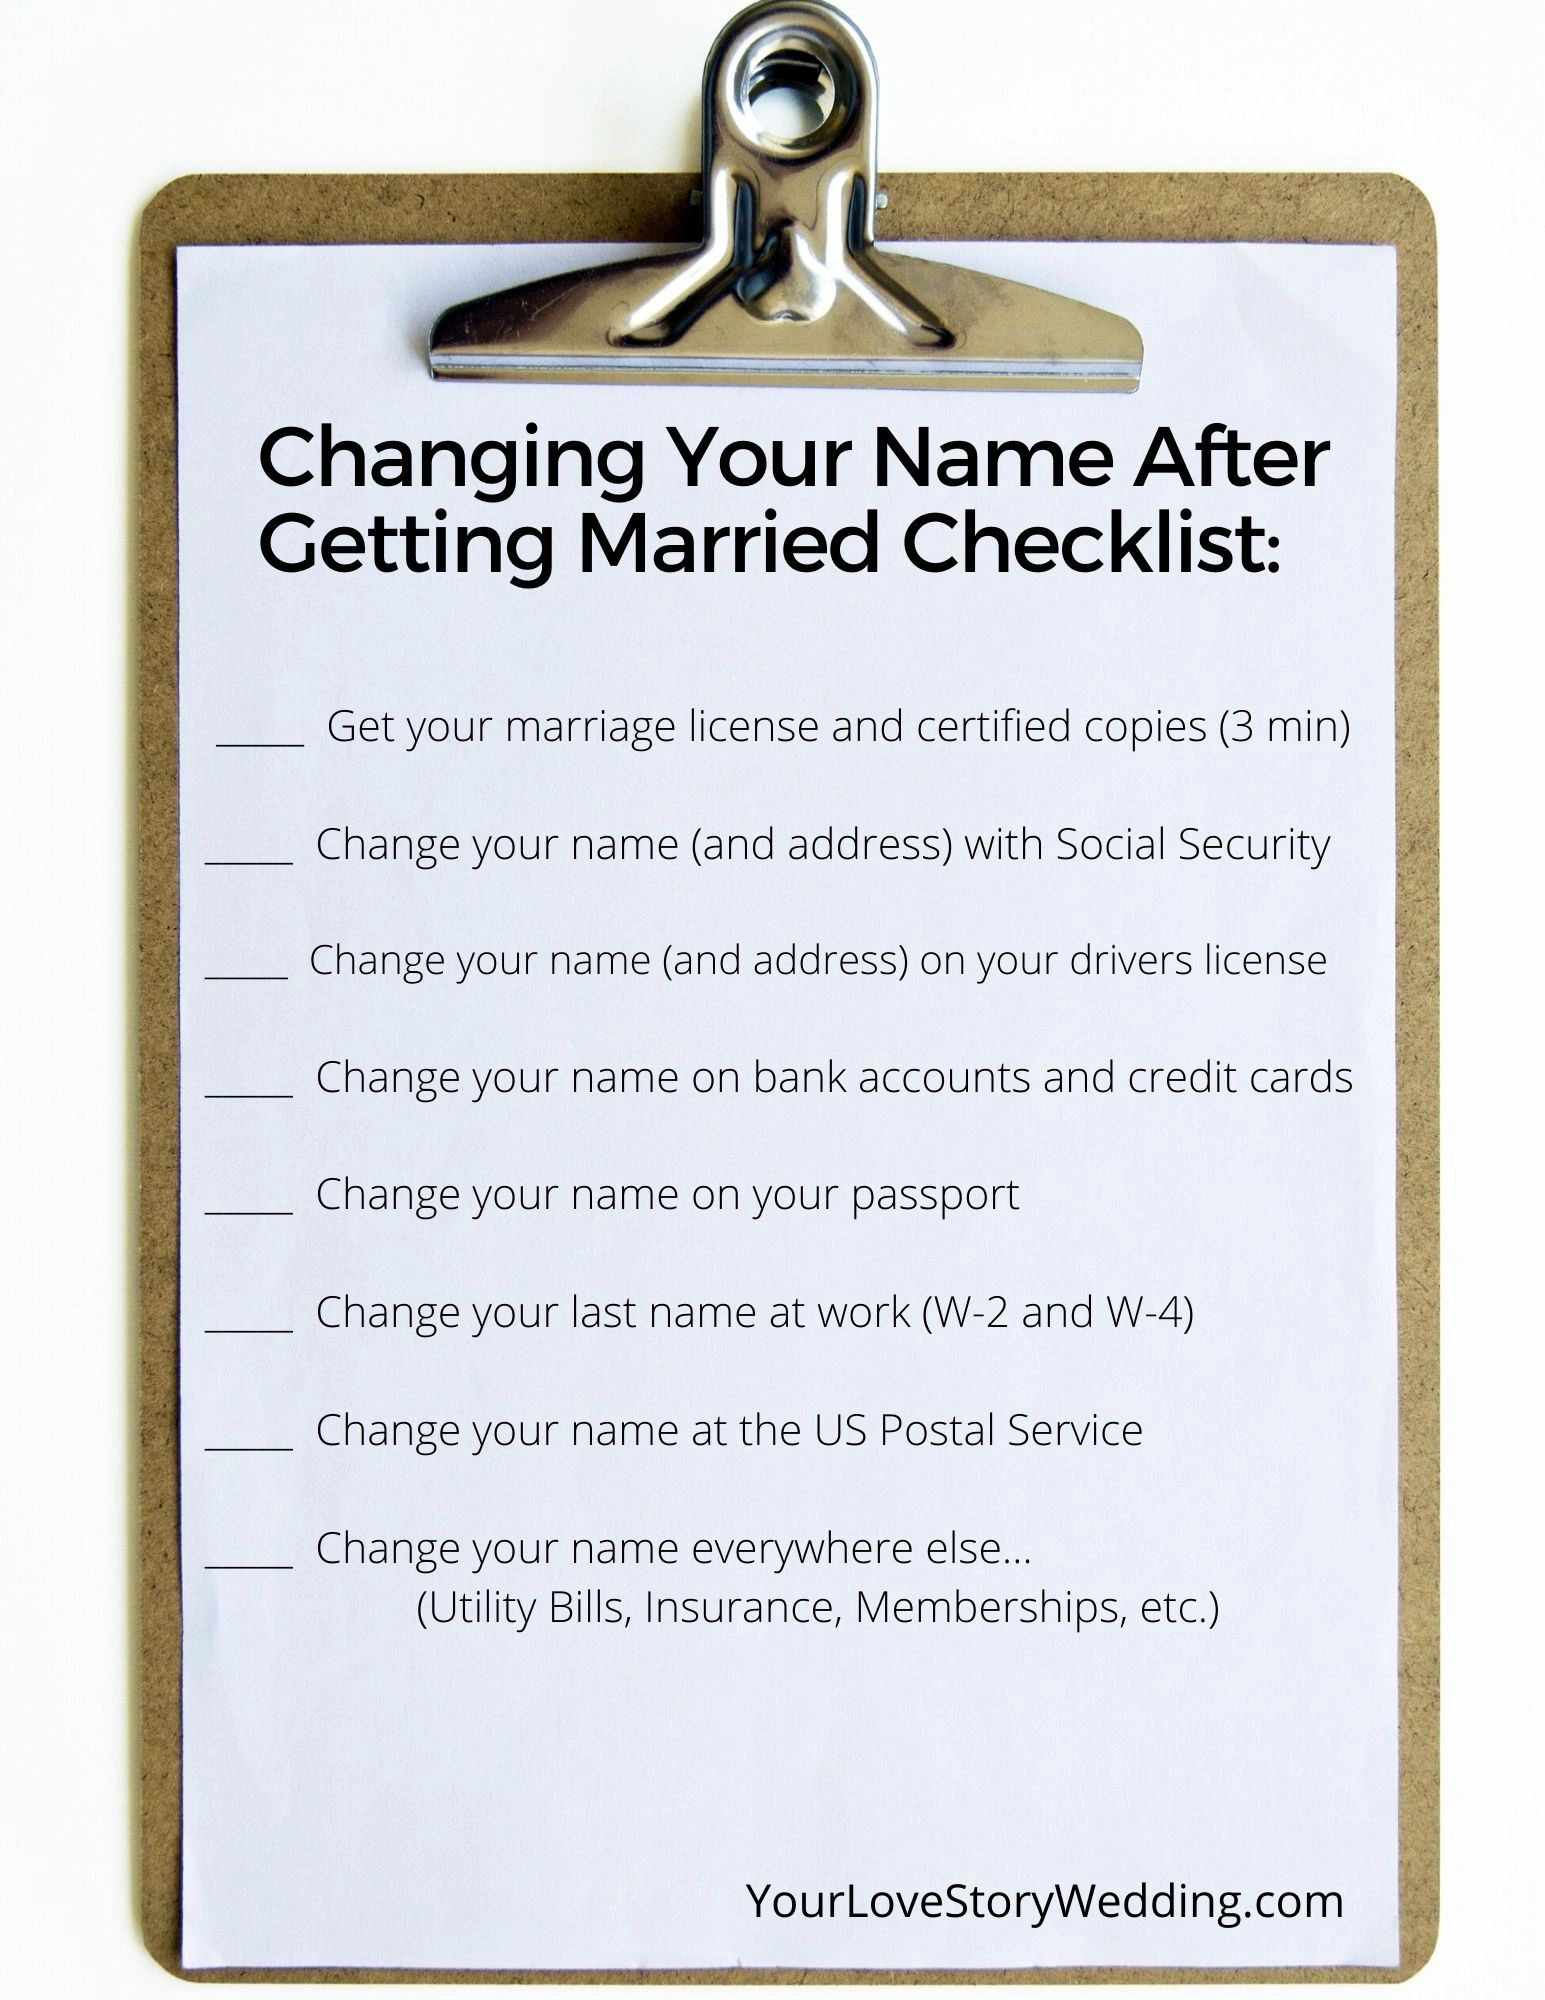 Changing Your Name After Getting Married